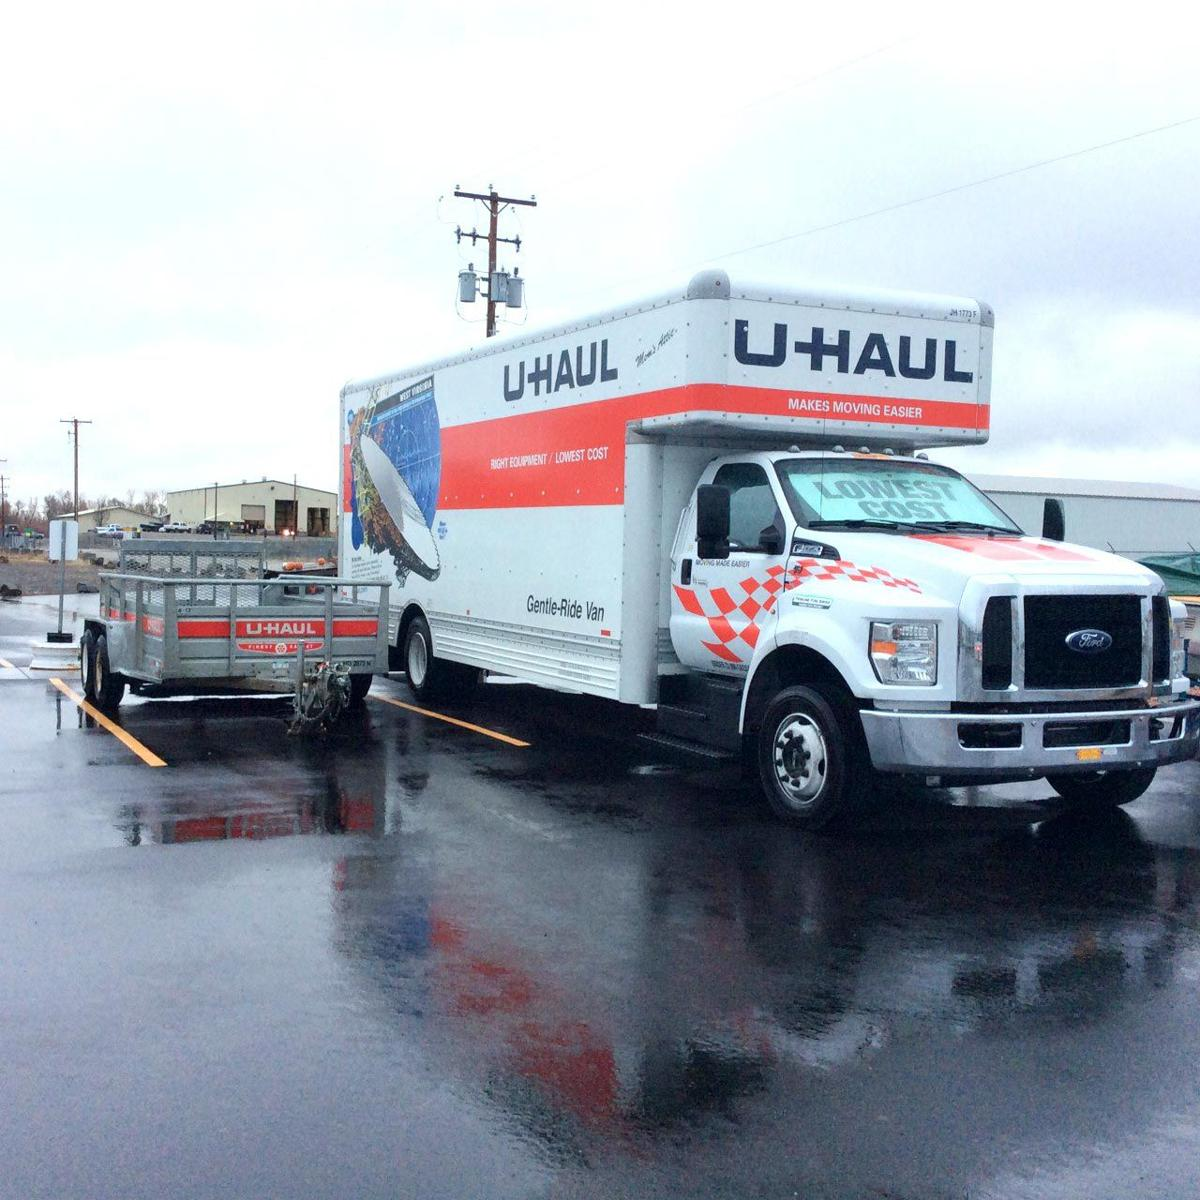 Self Storage Plus Joins Forces With U-Haul